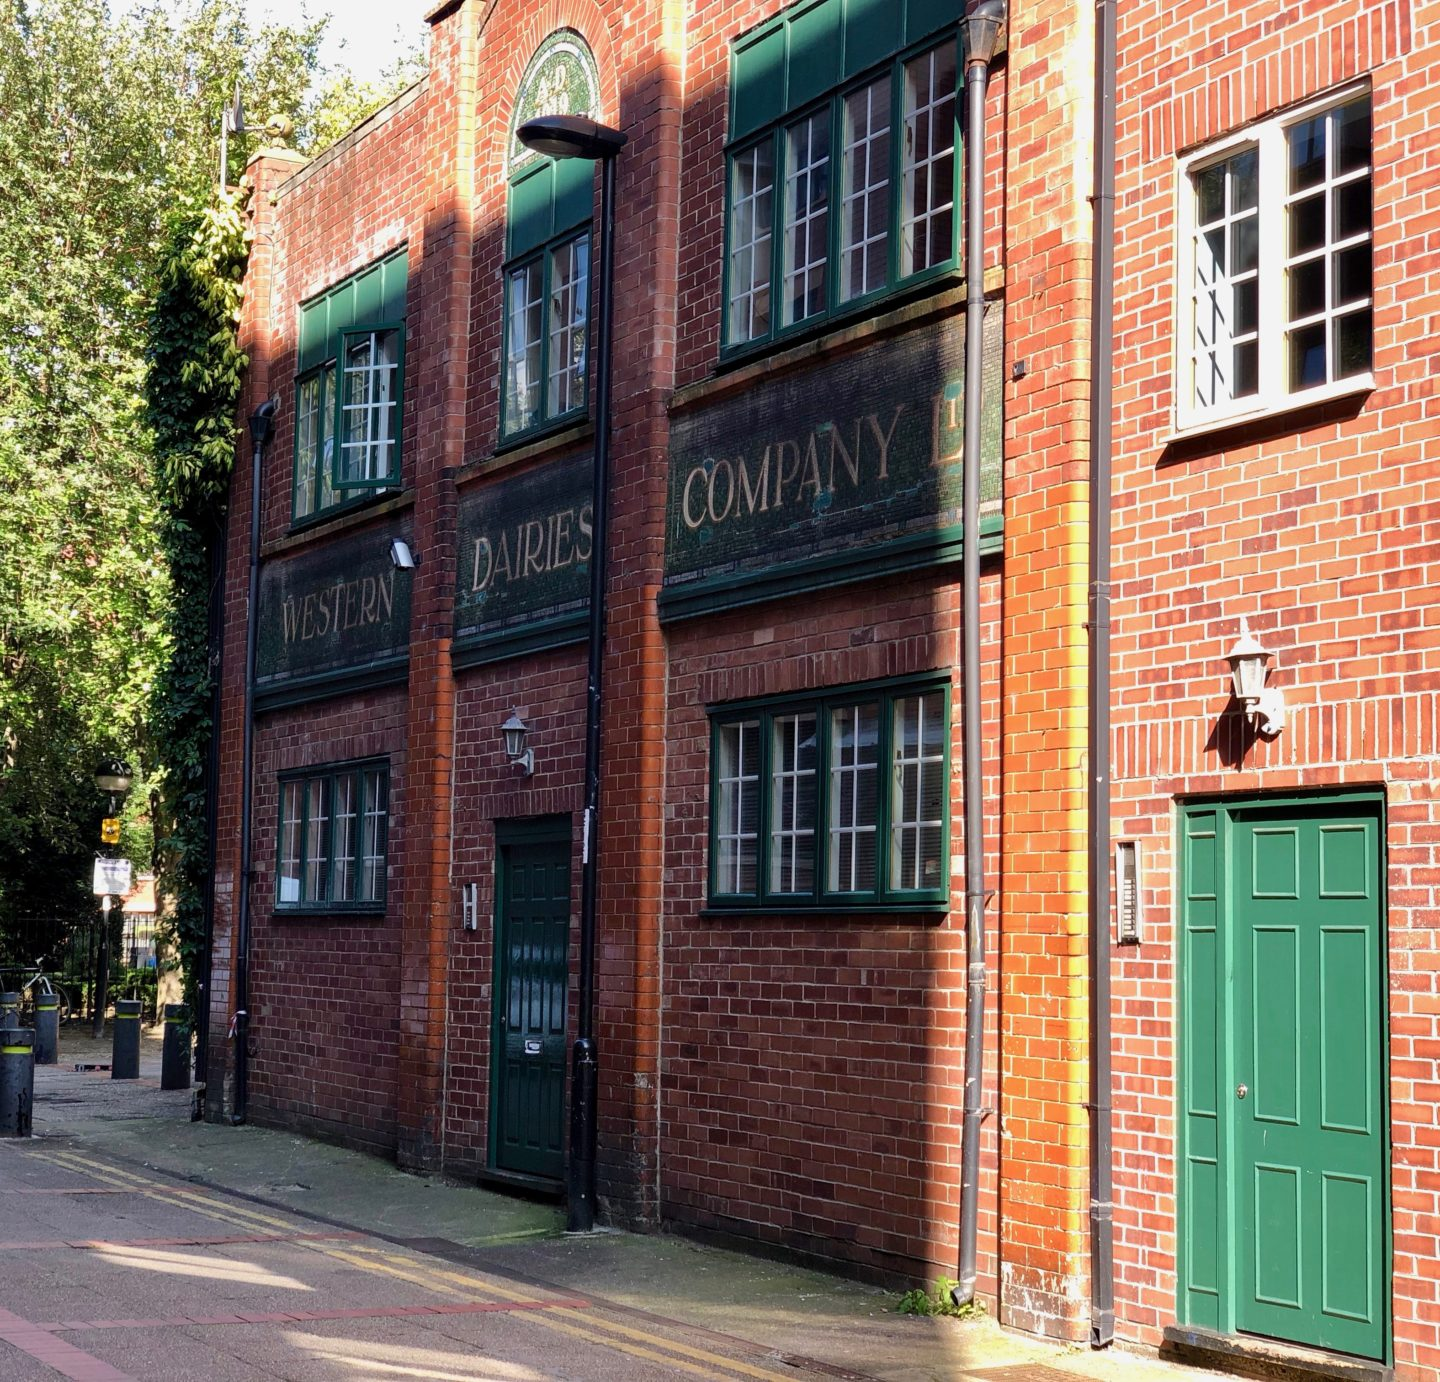 What we thought of the self-guided heritage walk of Newcastle upon Tyne with Curious About